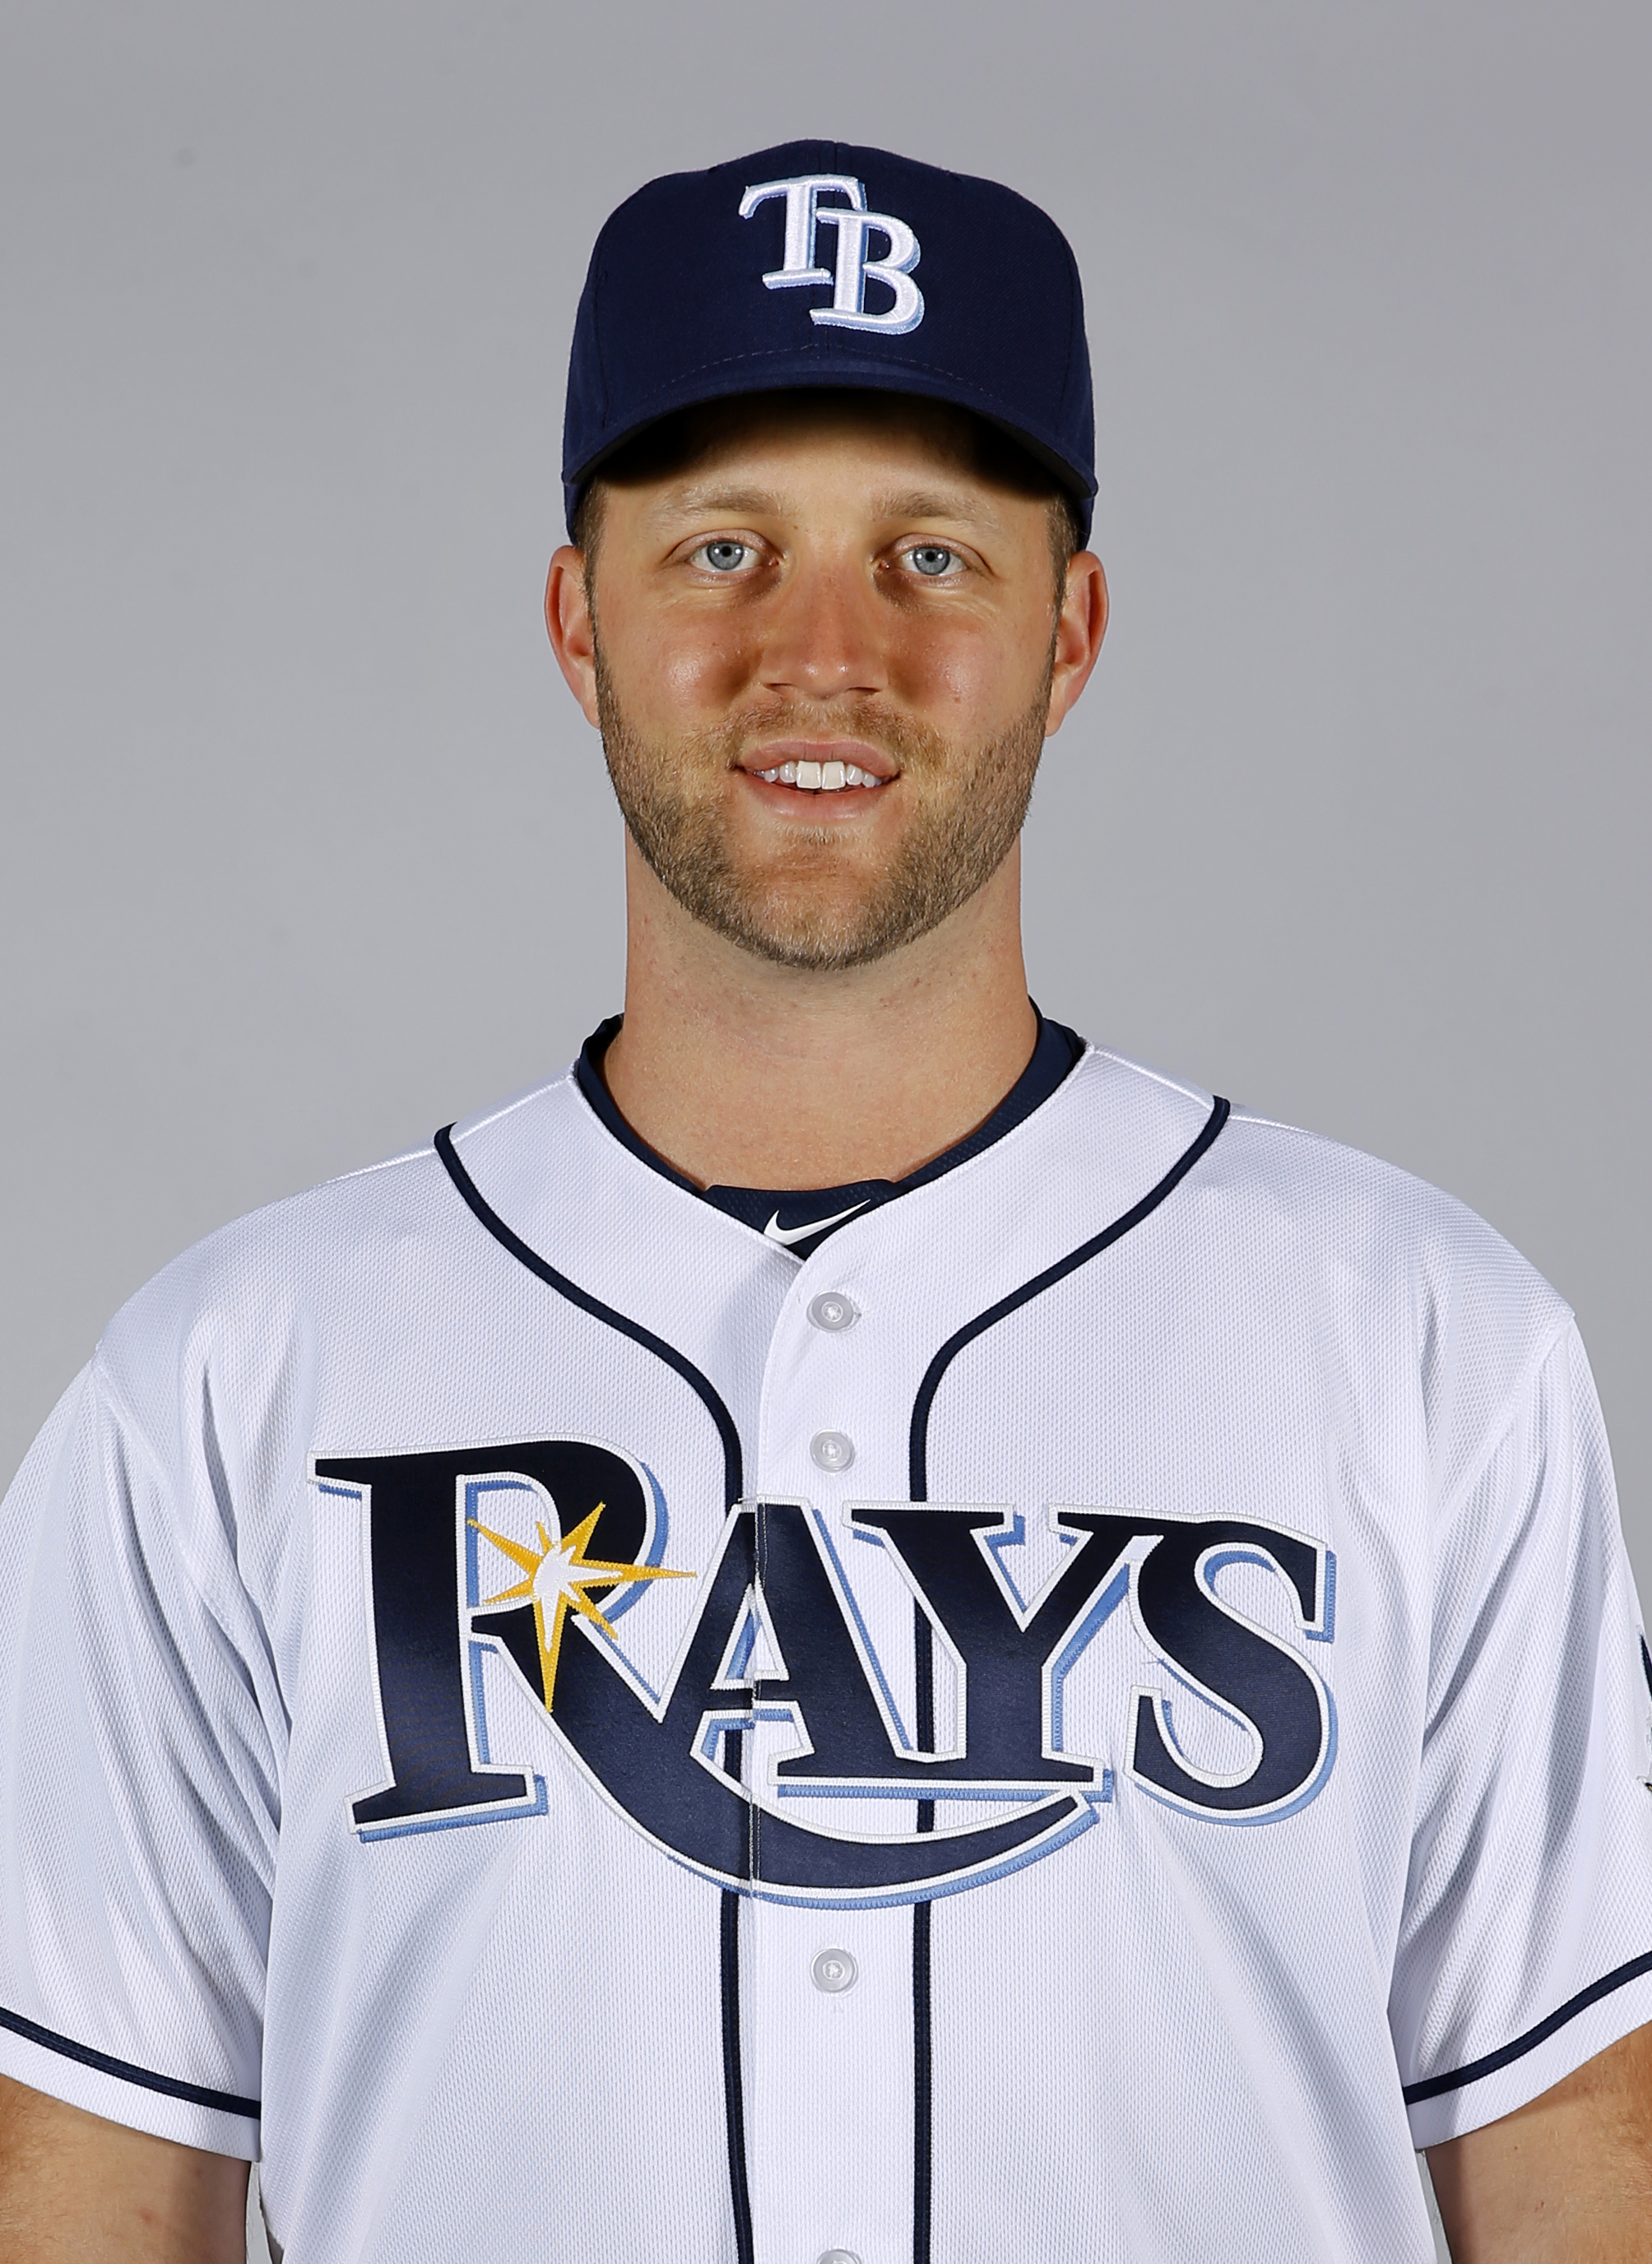 This is a 2016 photo of pitcher Brad Boxberger of the Tampa Bay Rays baseball team. This image reflects the 2016 active roster as of Thursday, Feb. 25, 2016, when this image was taken. (AP Photo/Patrick Semansky)